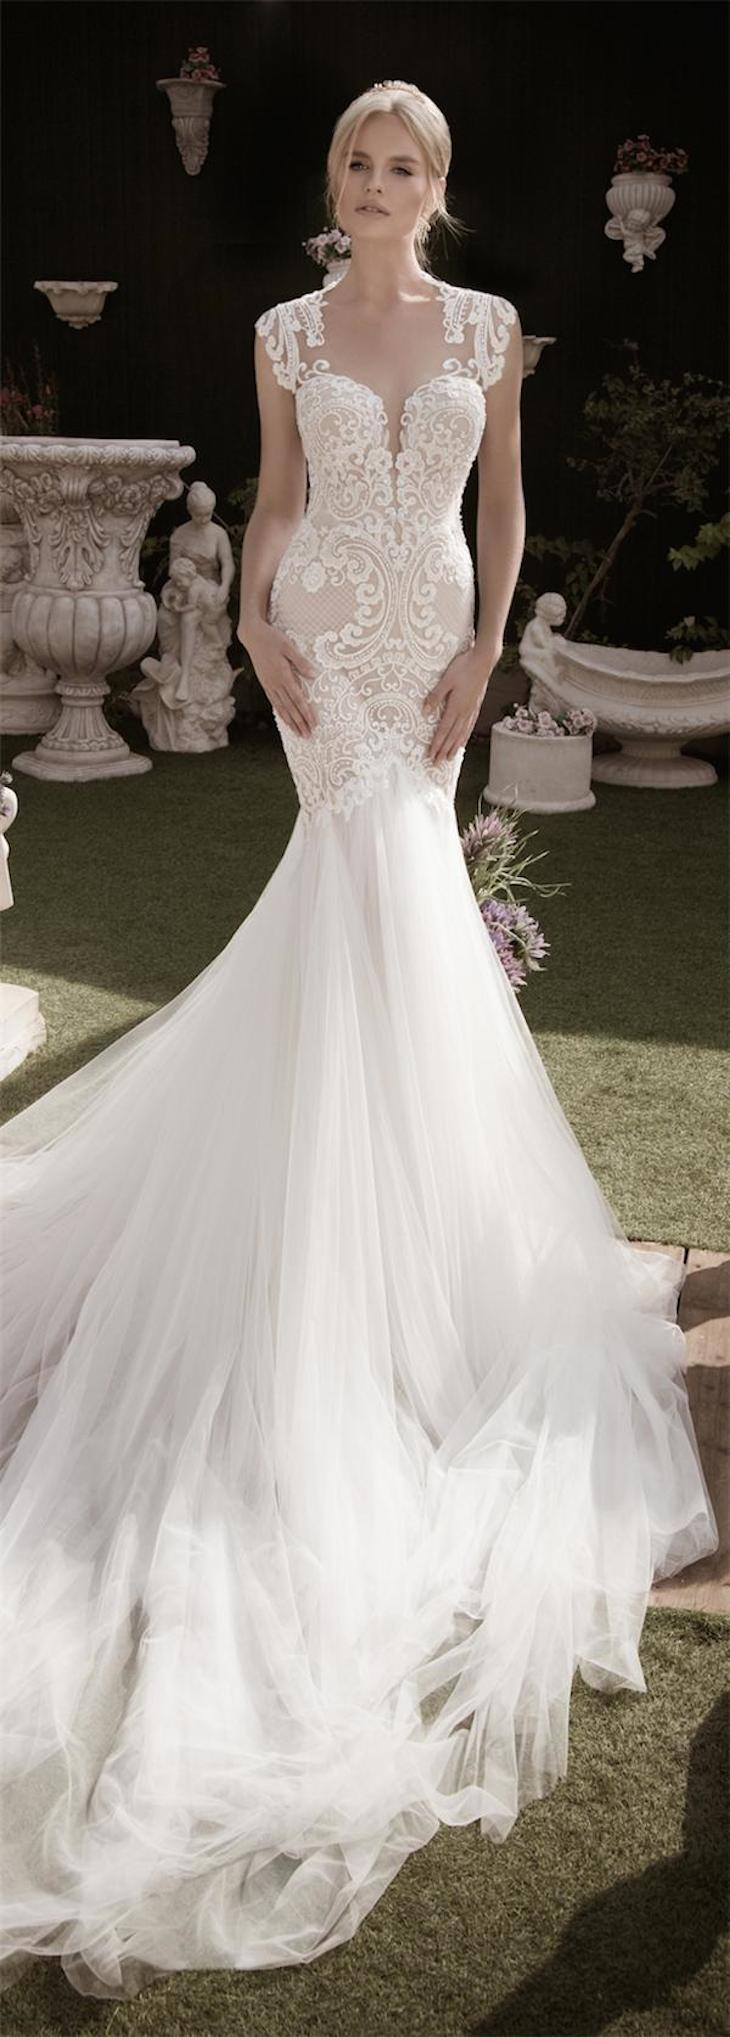 Top 10 Popular Wedding Dresses For 2016 Top Inspired